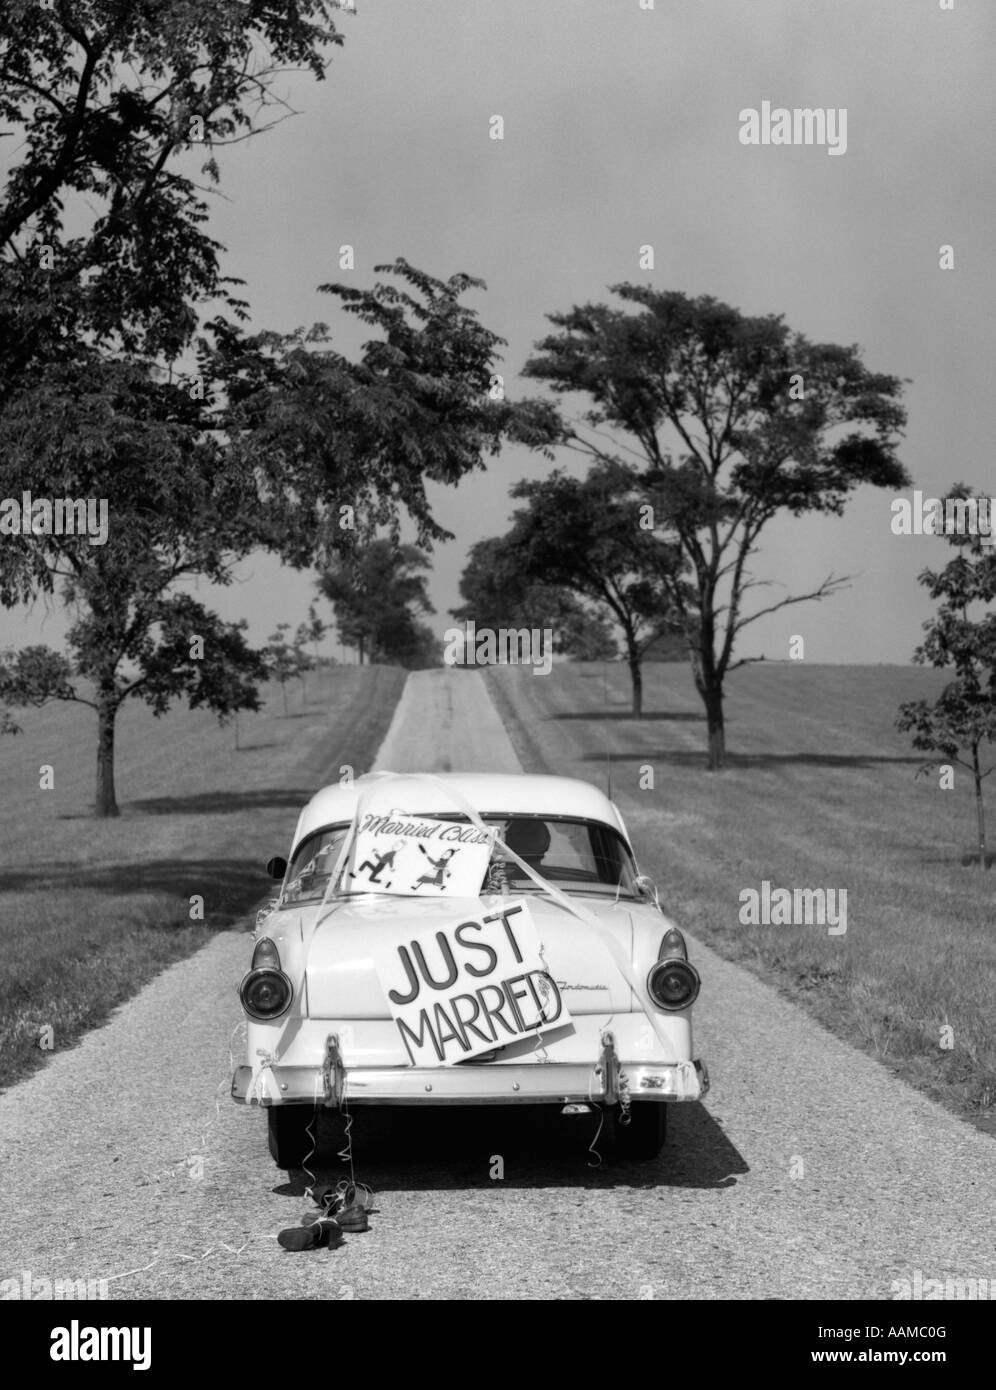 1950s BACK OF WHITE FORD SEDAN DRIVING OFF WITH JUST MARRIED SIGN ON TRUNK - Stock Image